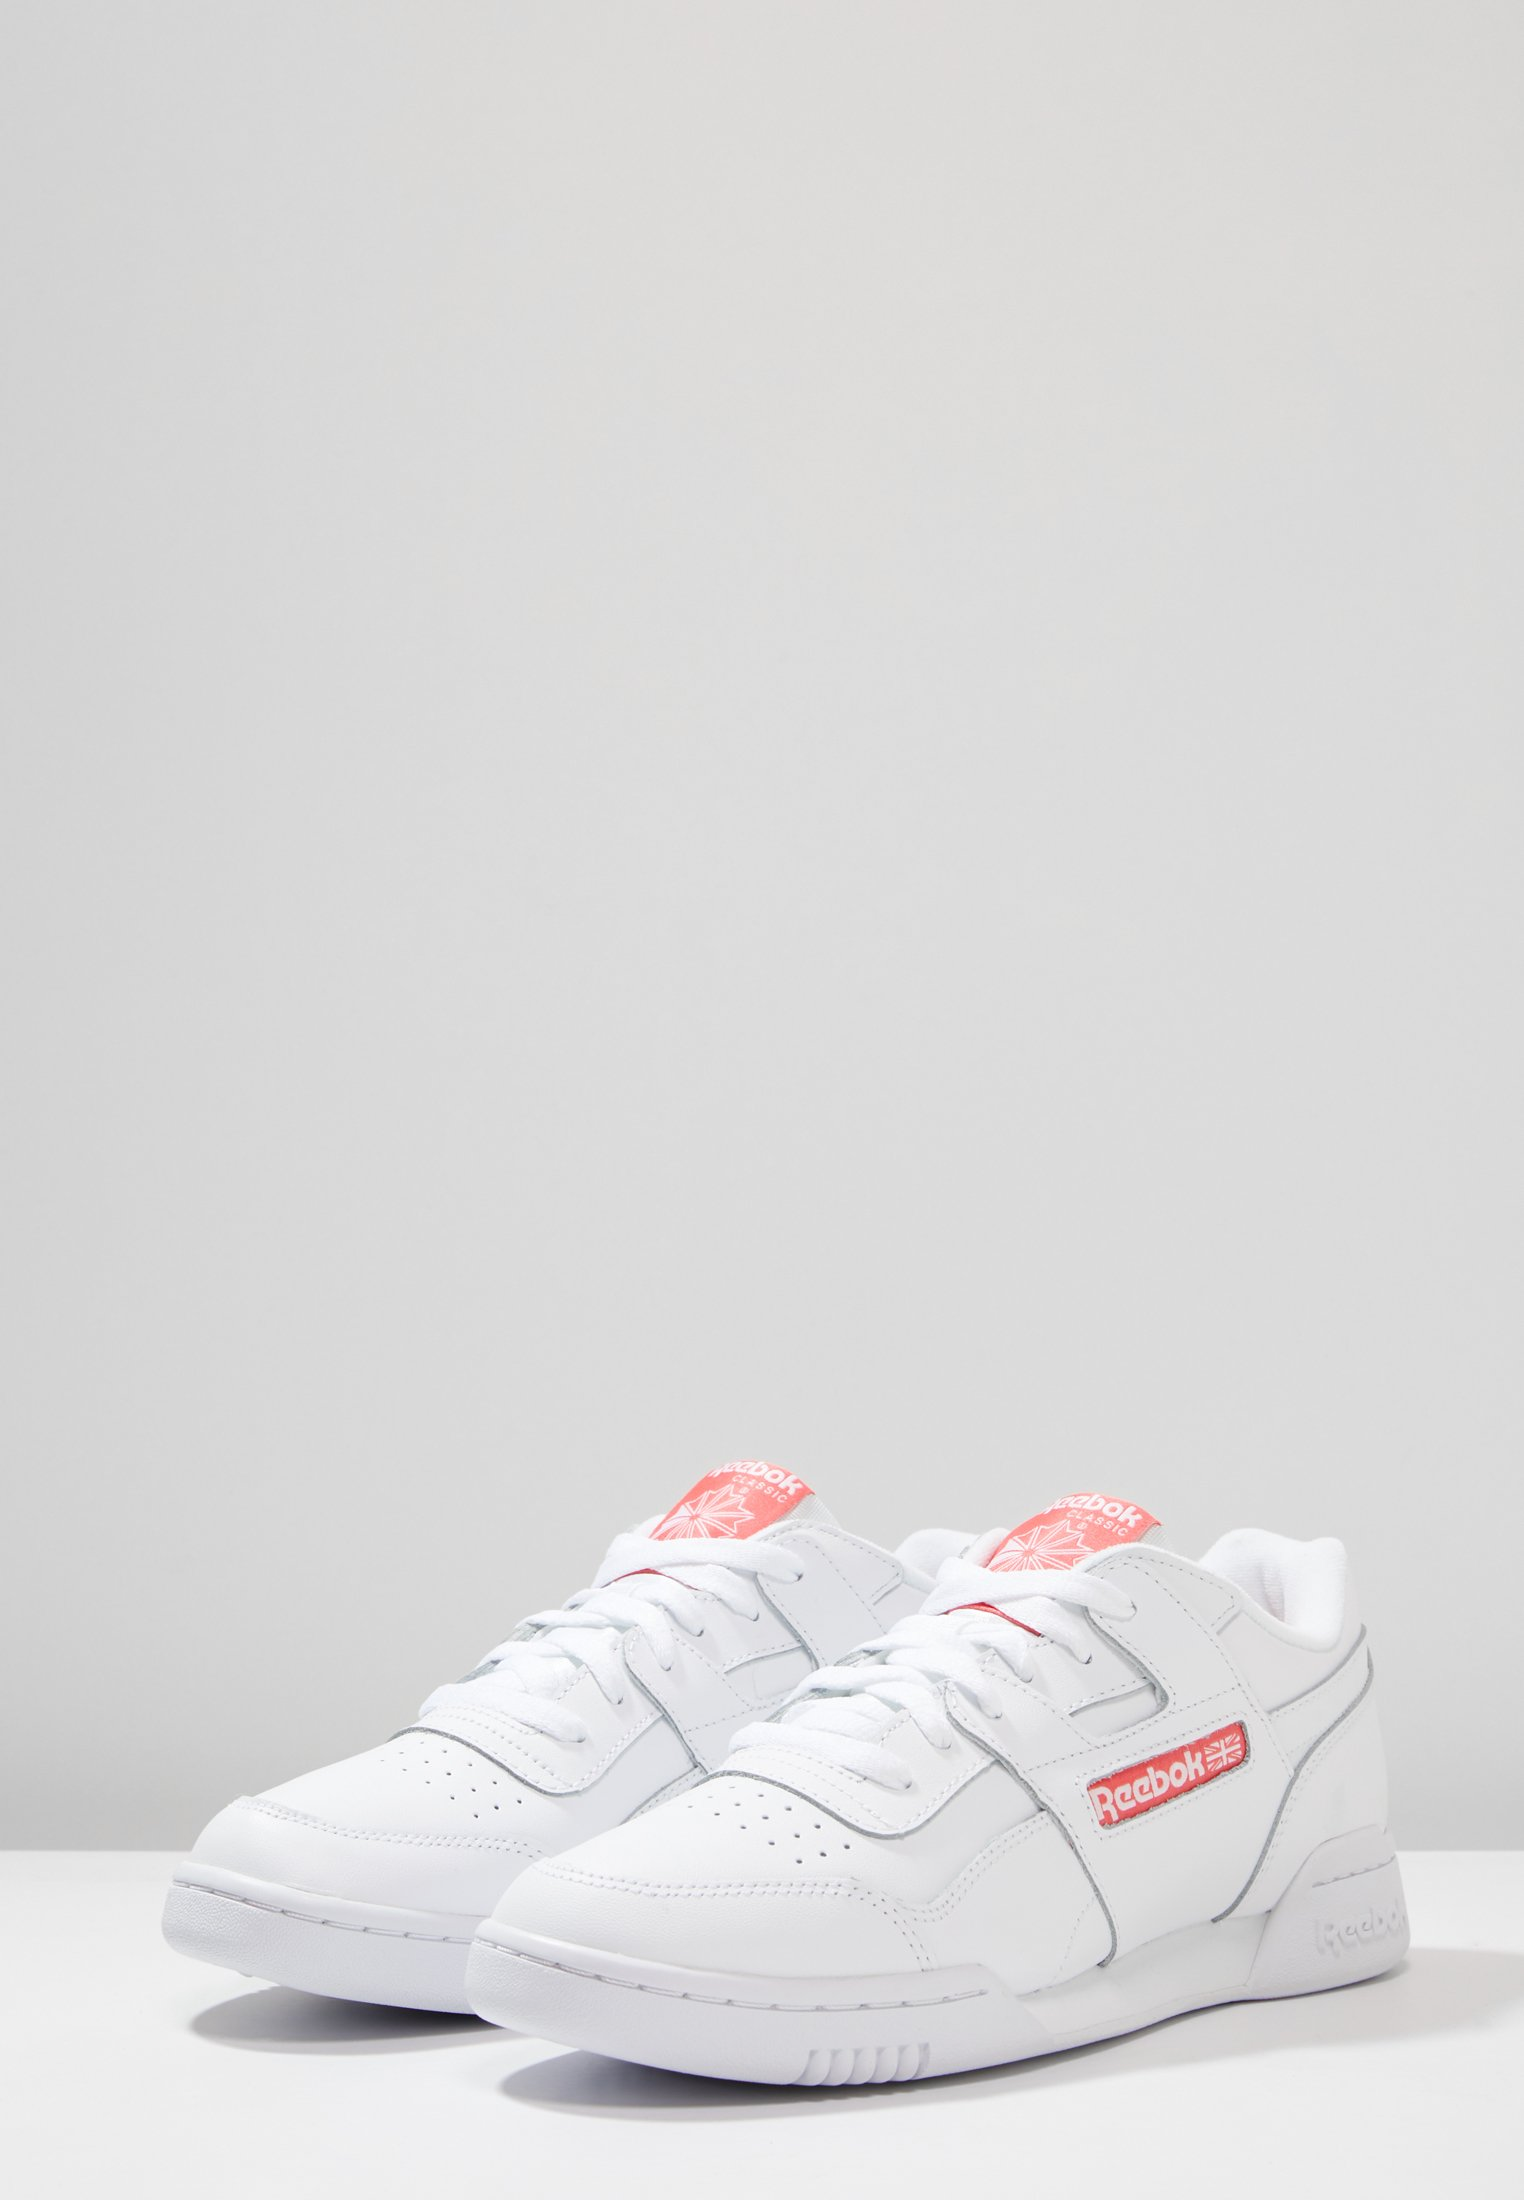 PlusBaskets Rose Reebok Classic bright Basses White Workout I2WEDH9Y